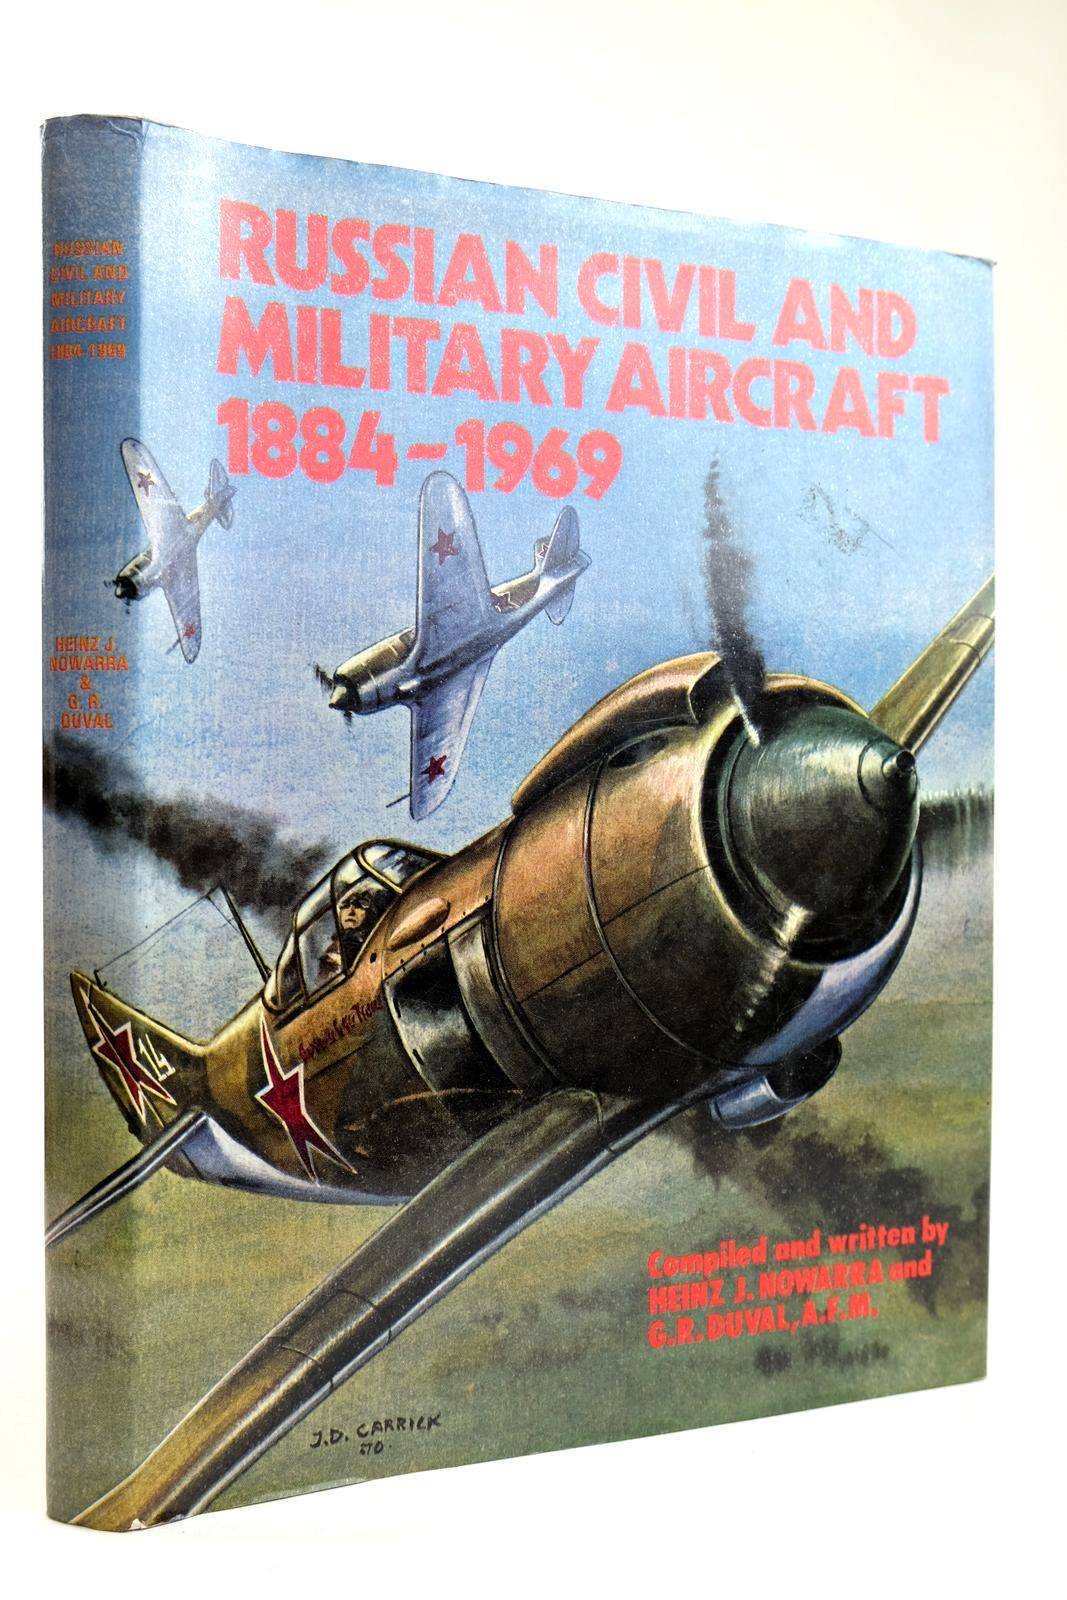 Photo of RUSSIAN CIVIL AND MILITARY AIRCRAFT 1884-1969- Stock Number: 2132116